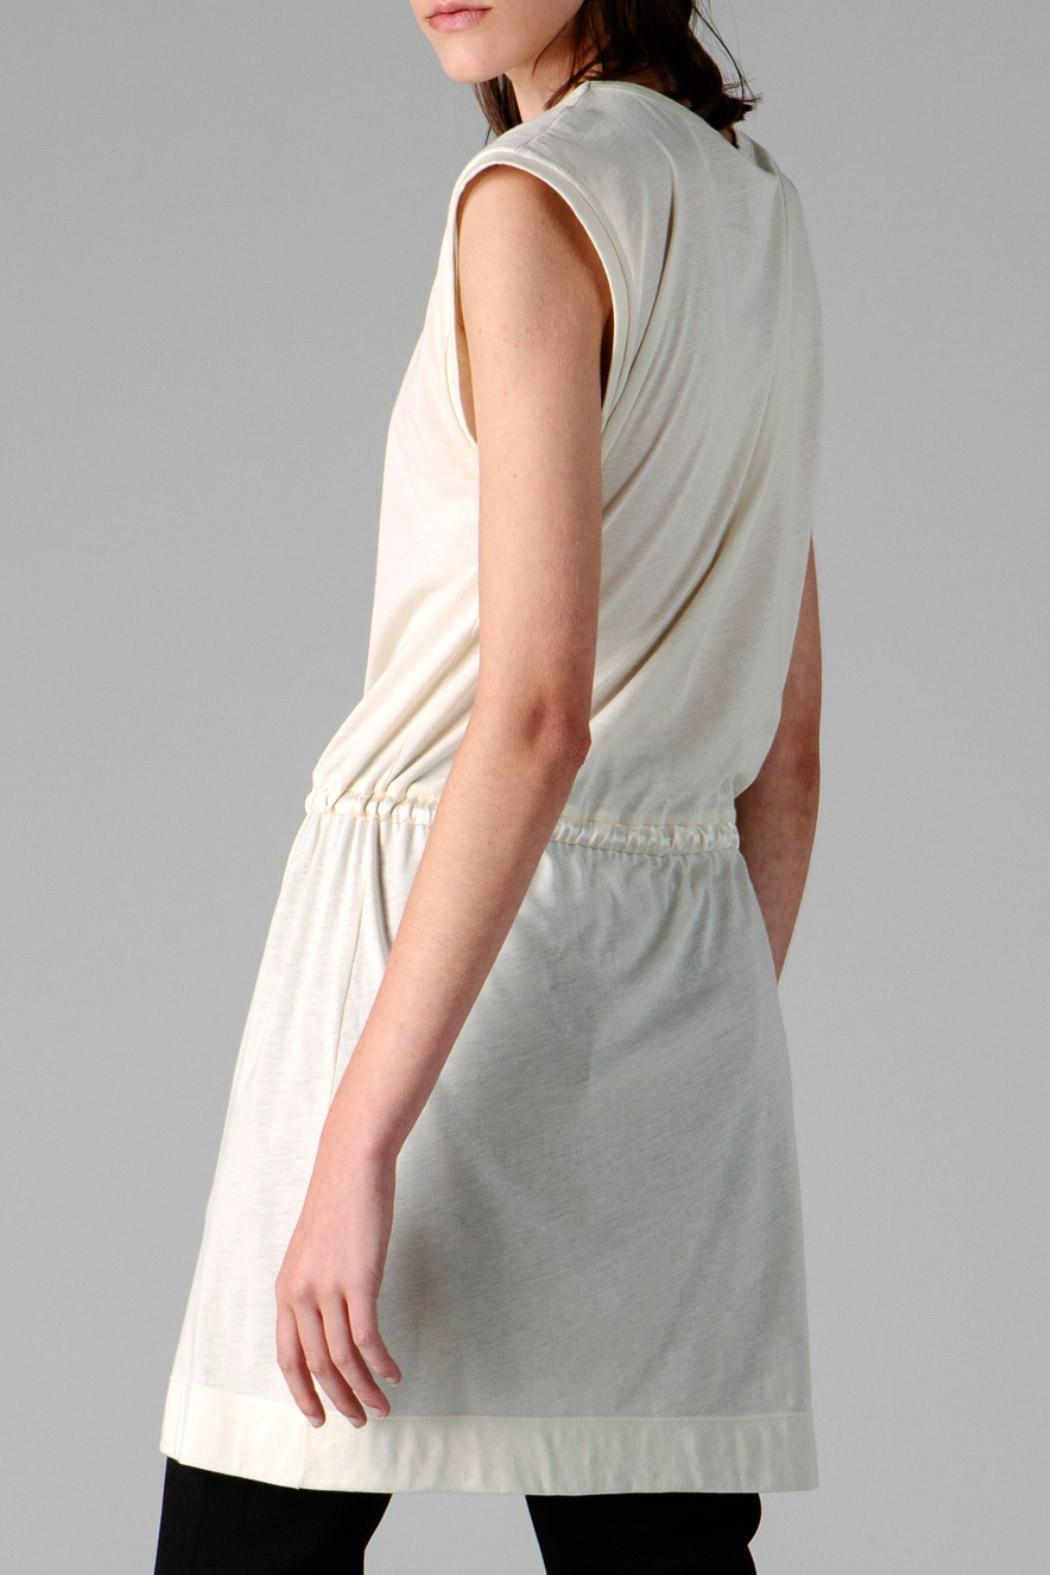 coragroppo Mitra Dress - Side Cropped Image